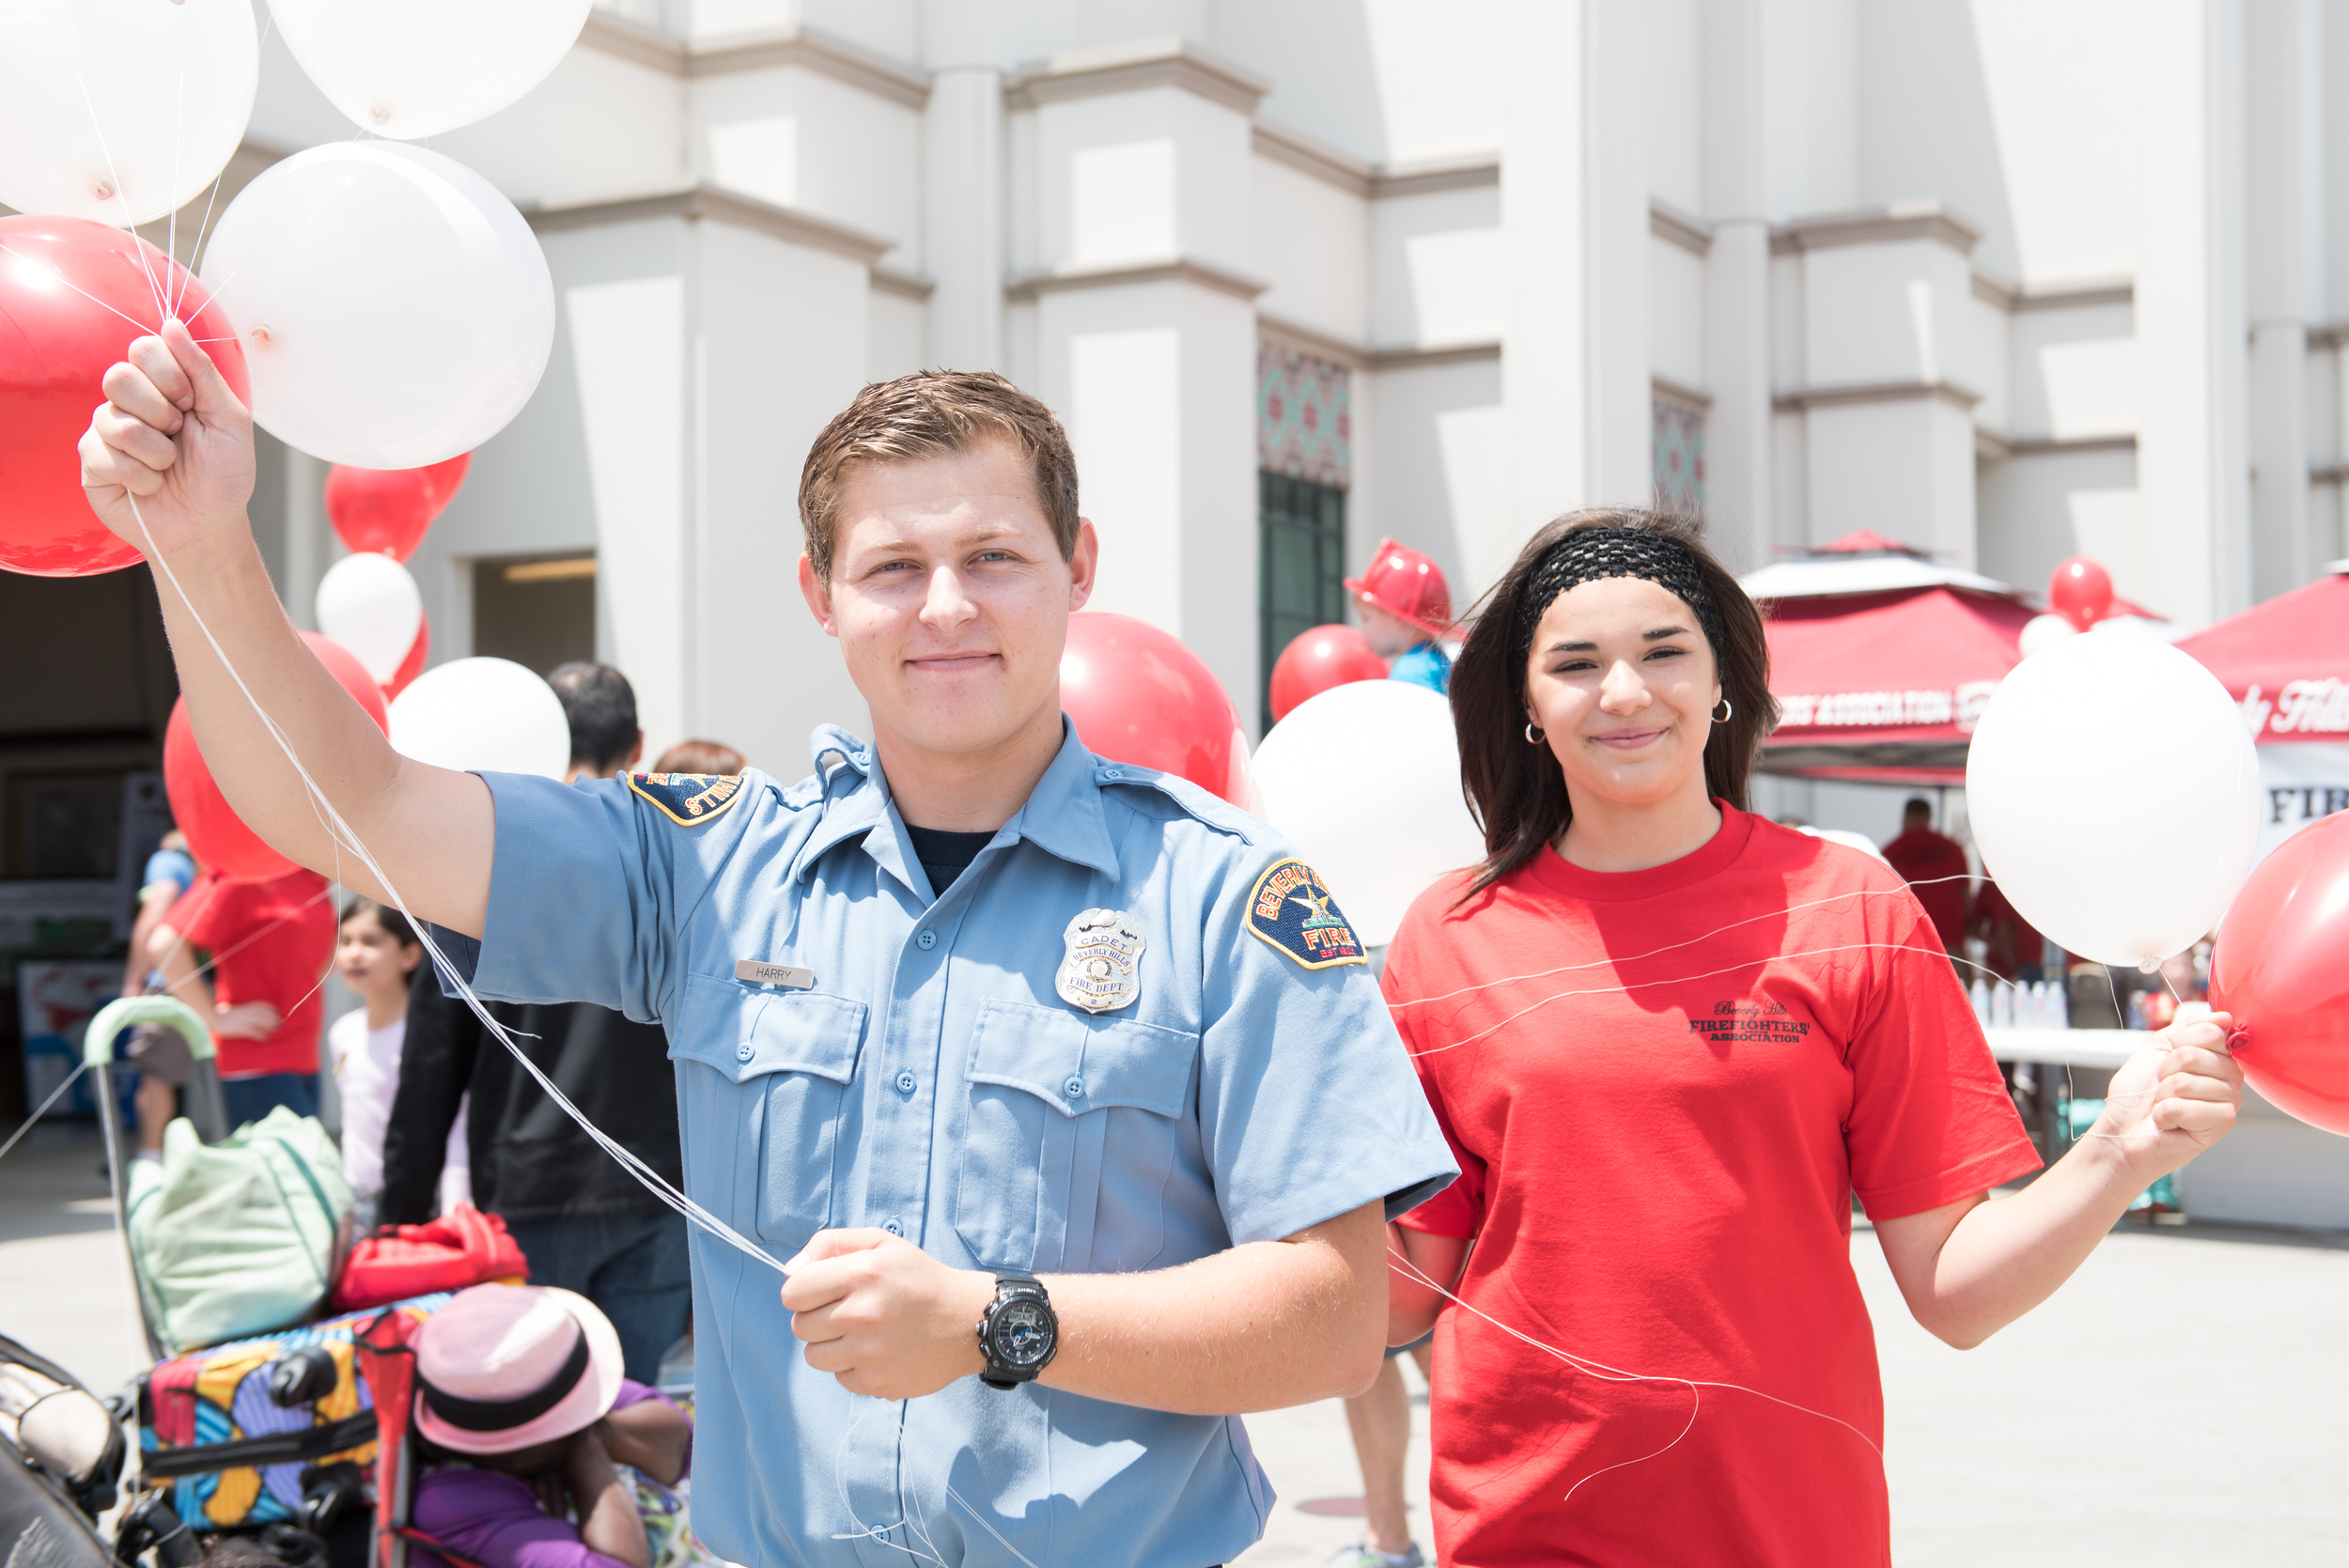 Copy of Fire Service Day 2015